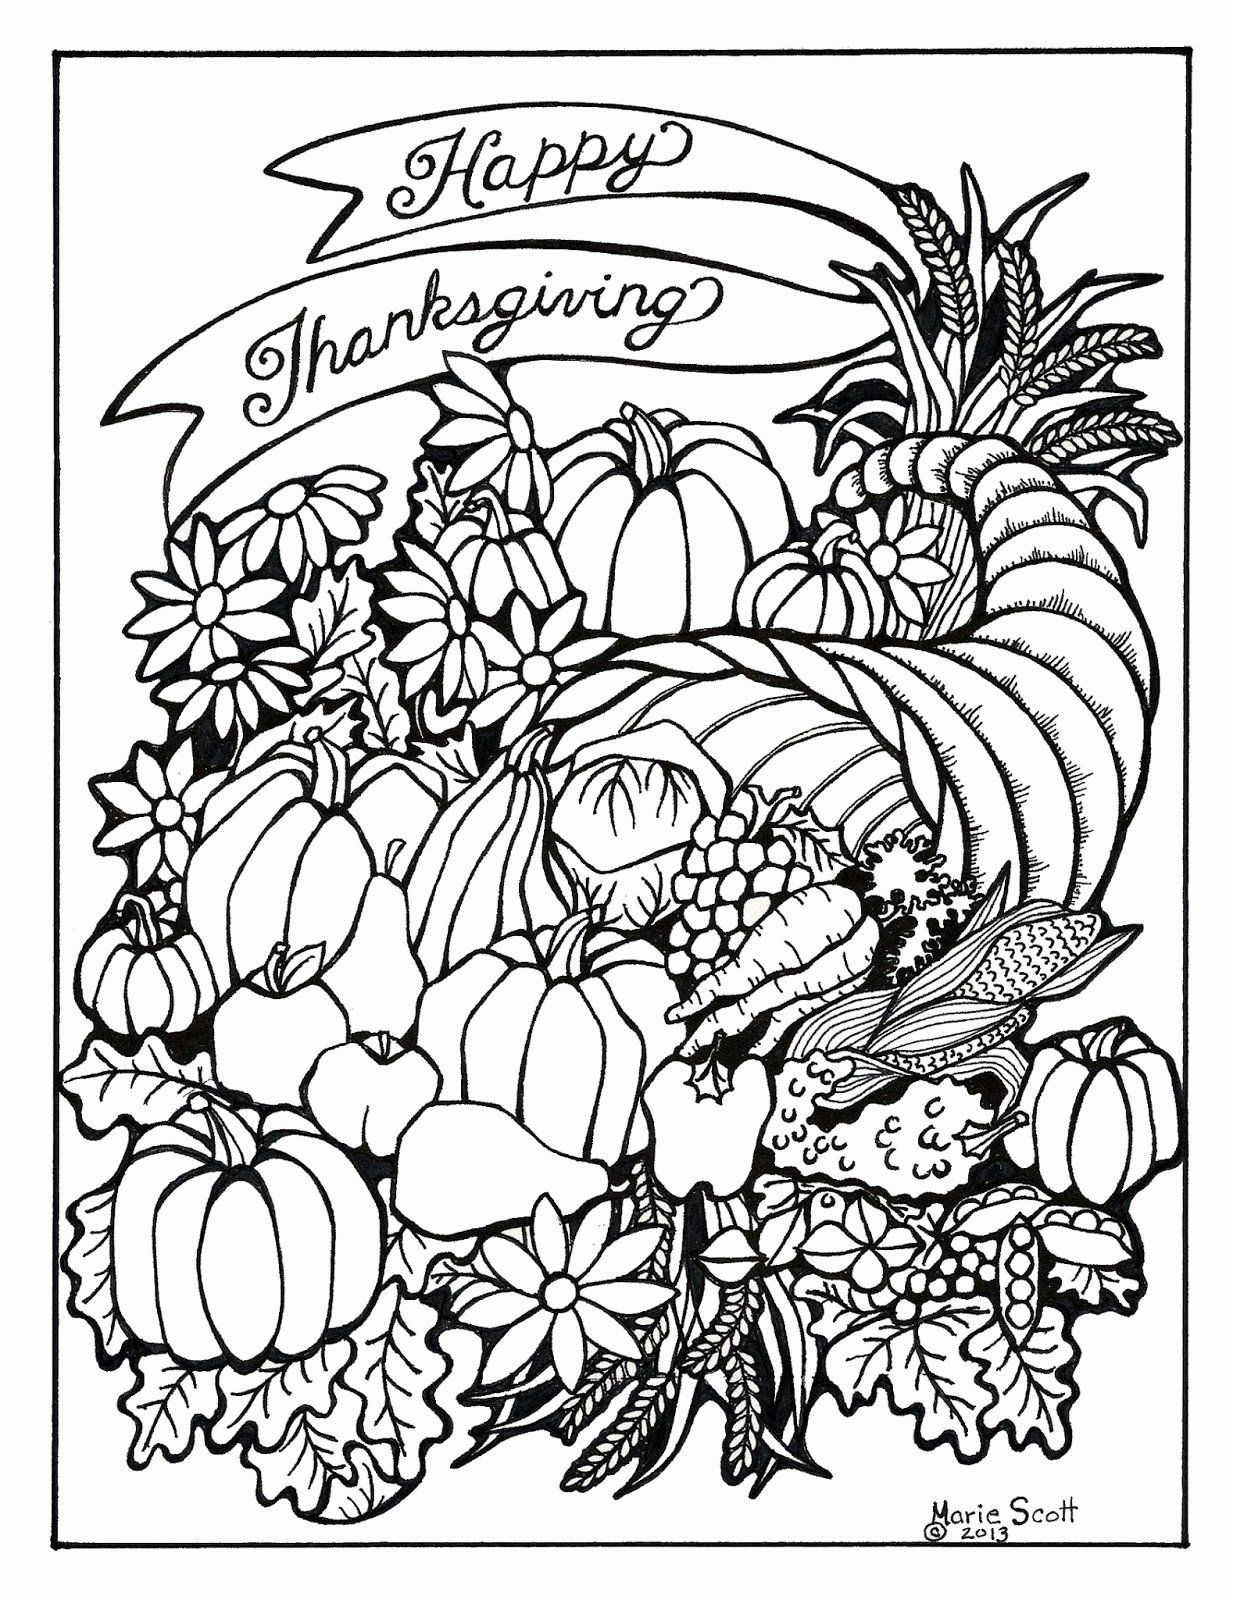 Thanksgiving Coloring Pages For Adults In 2020 Thanksgiving